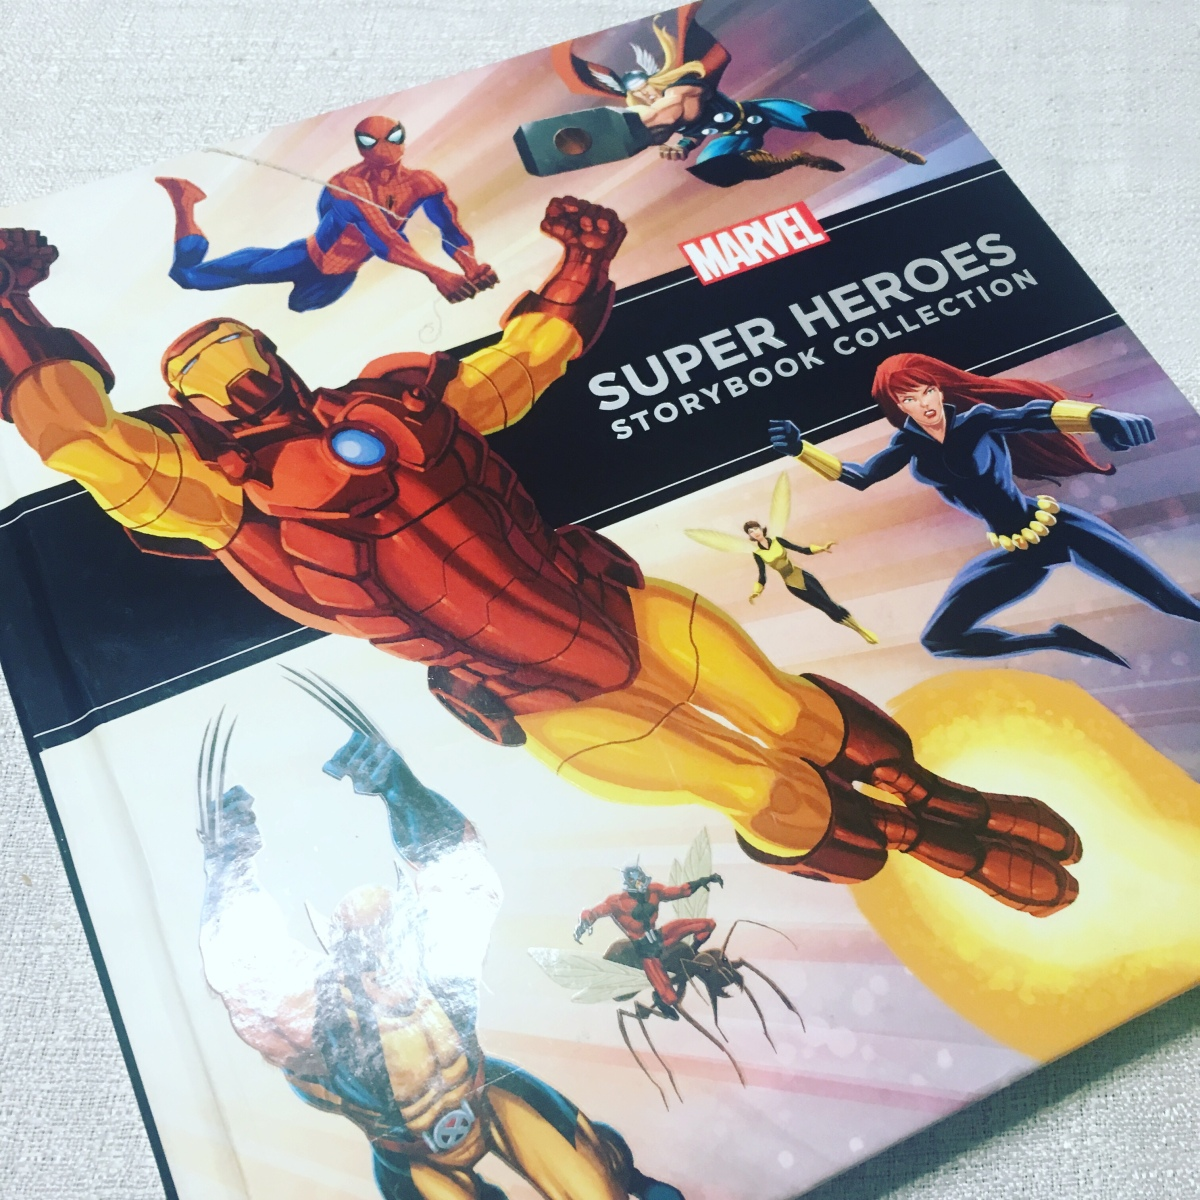 Origin stories in the Marvel Super Heroes Storybook Collection